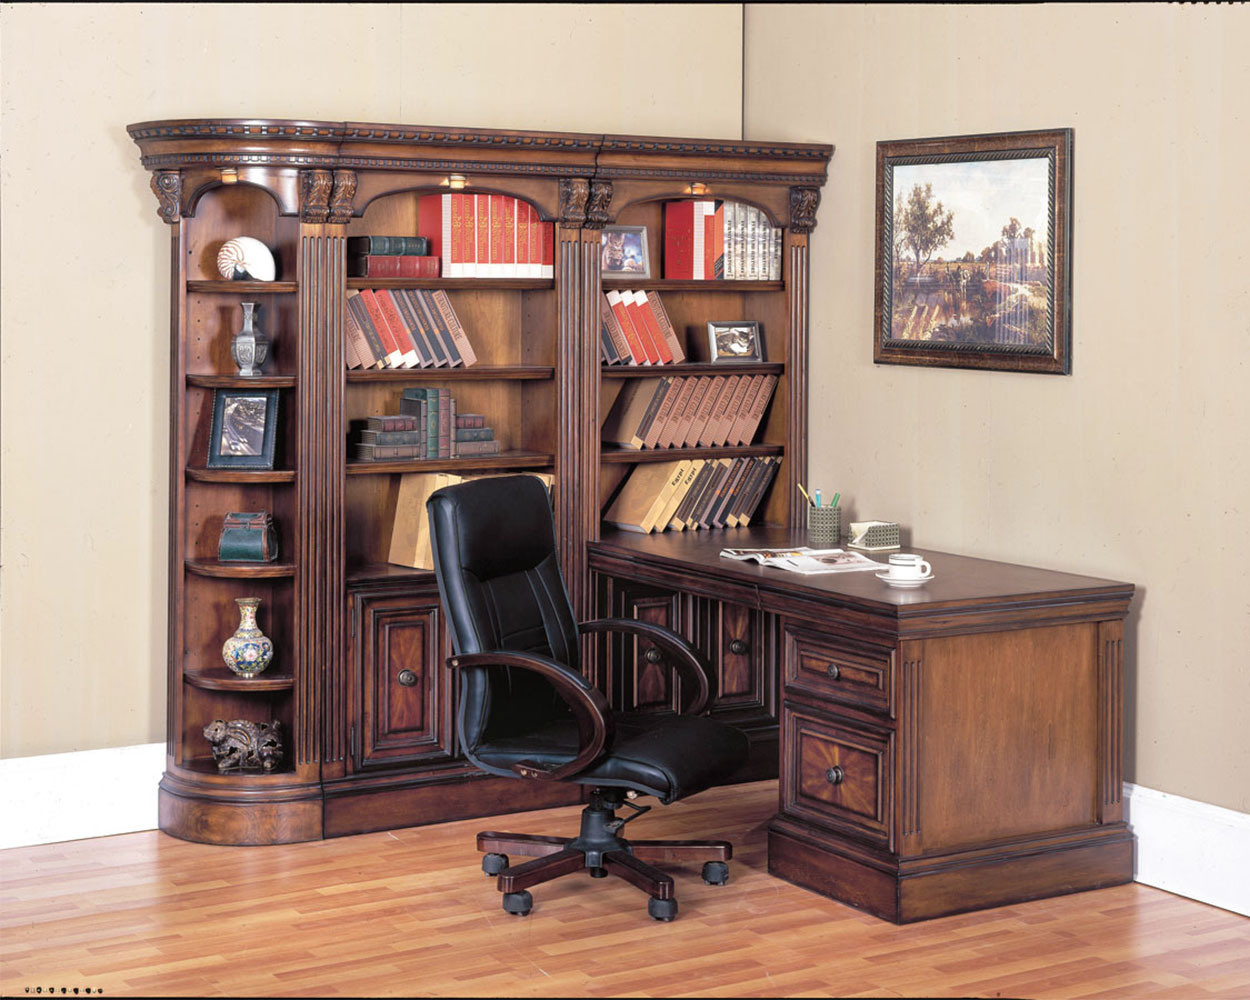 Huntington Home Products Parker House Huntington Home Office Furniture Ph Hun 5